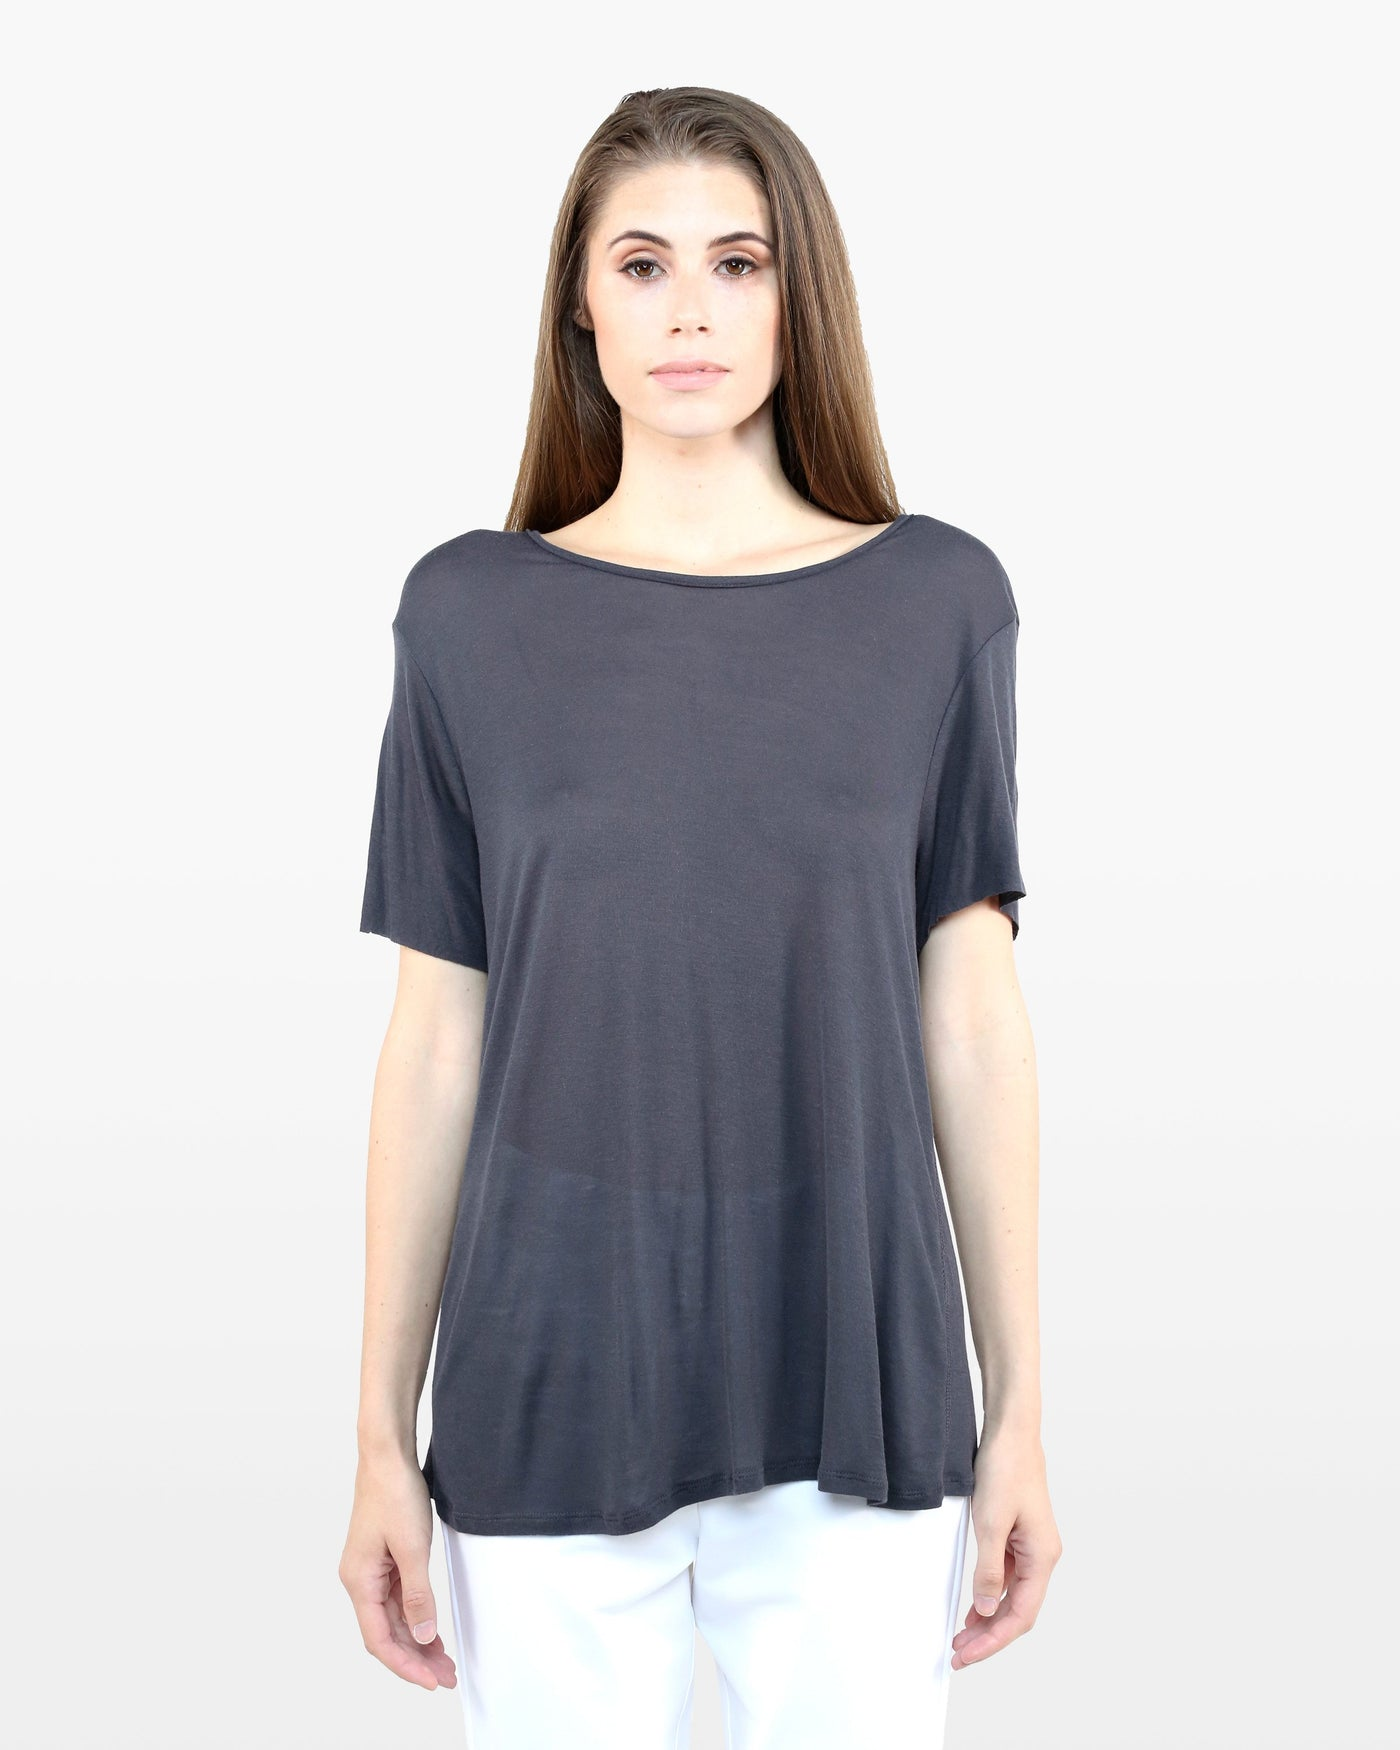 Avery Tee FIC in charcoal